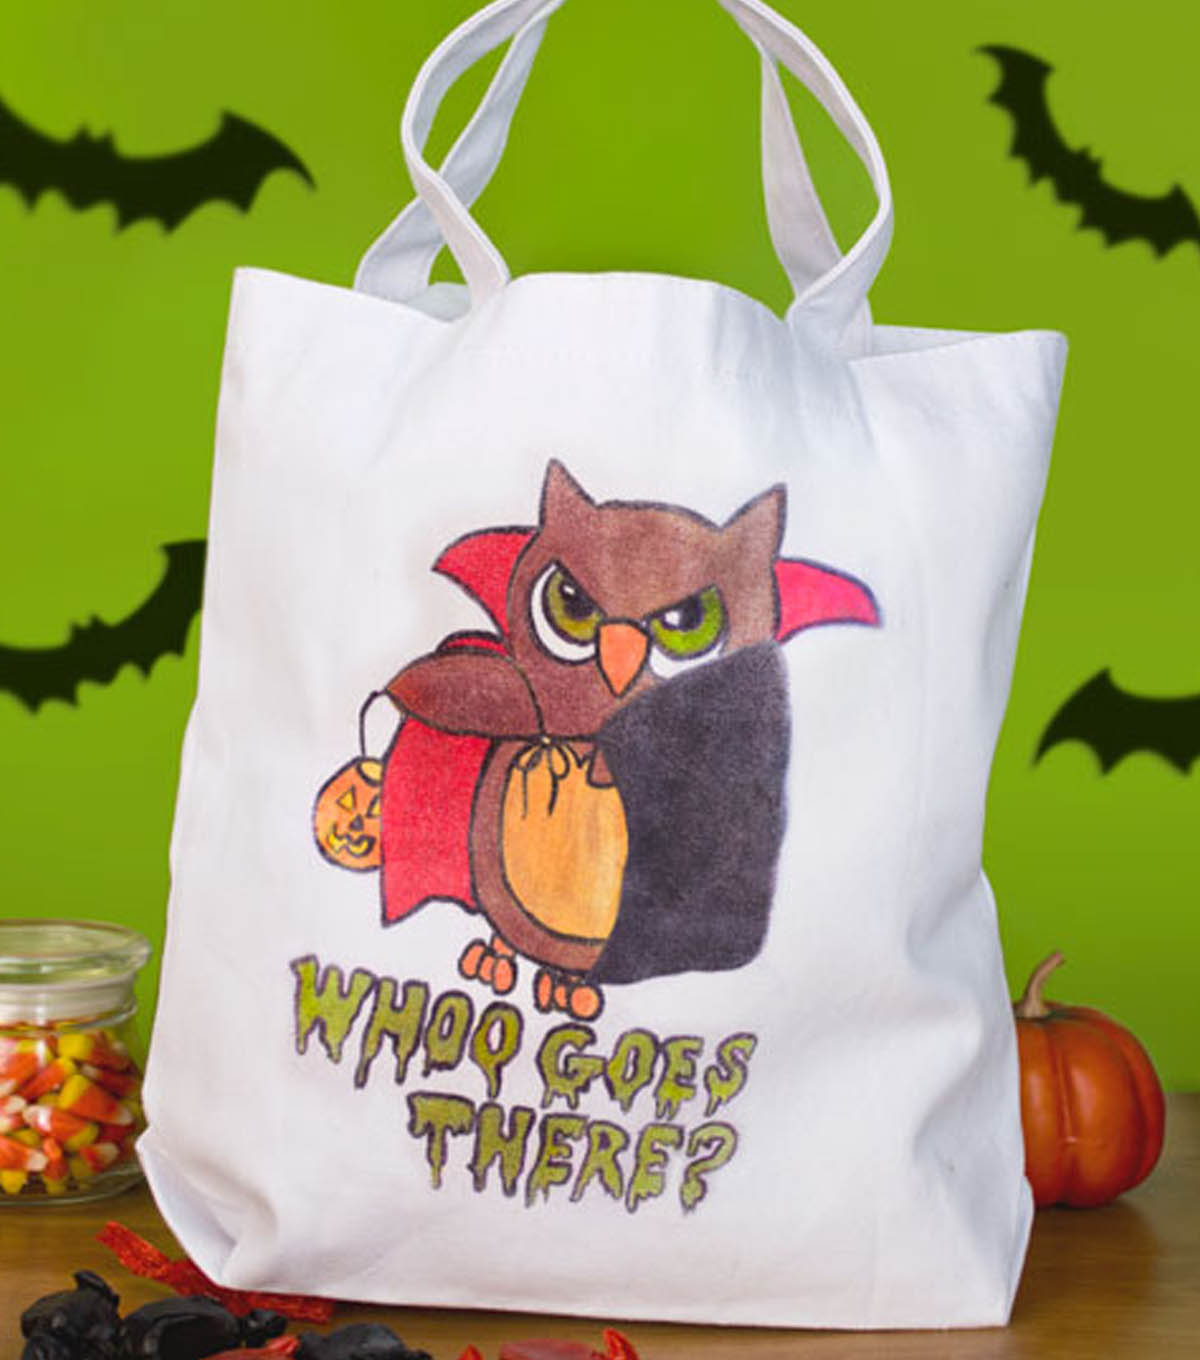 Whoo Goes There Tote